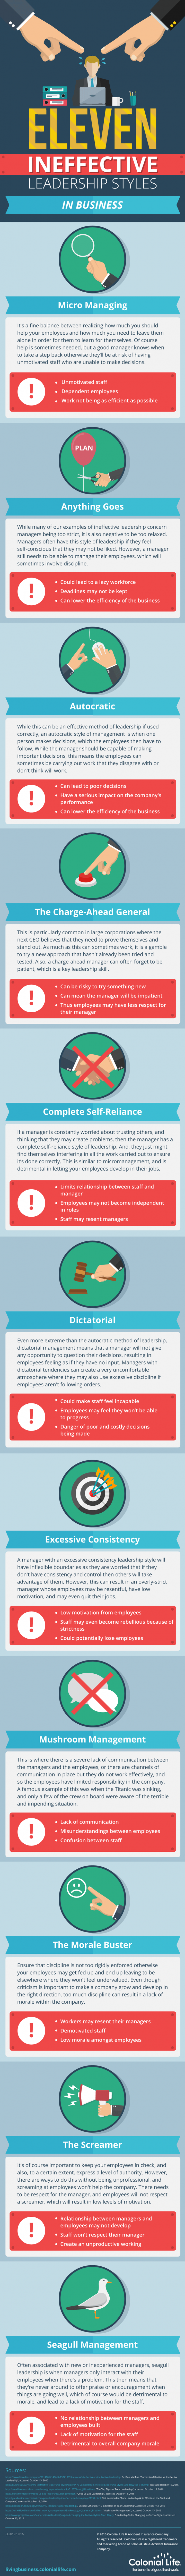 11 Leadership Styles That Will Hurt Your Business